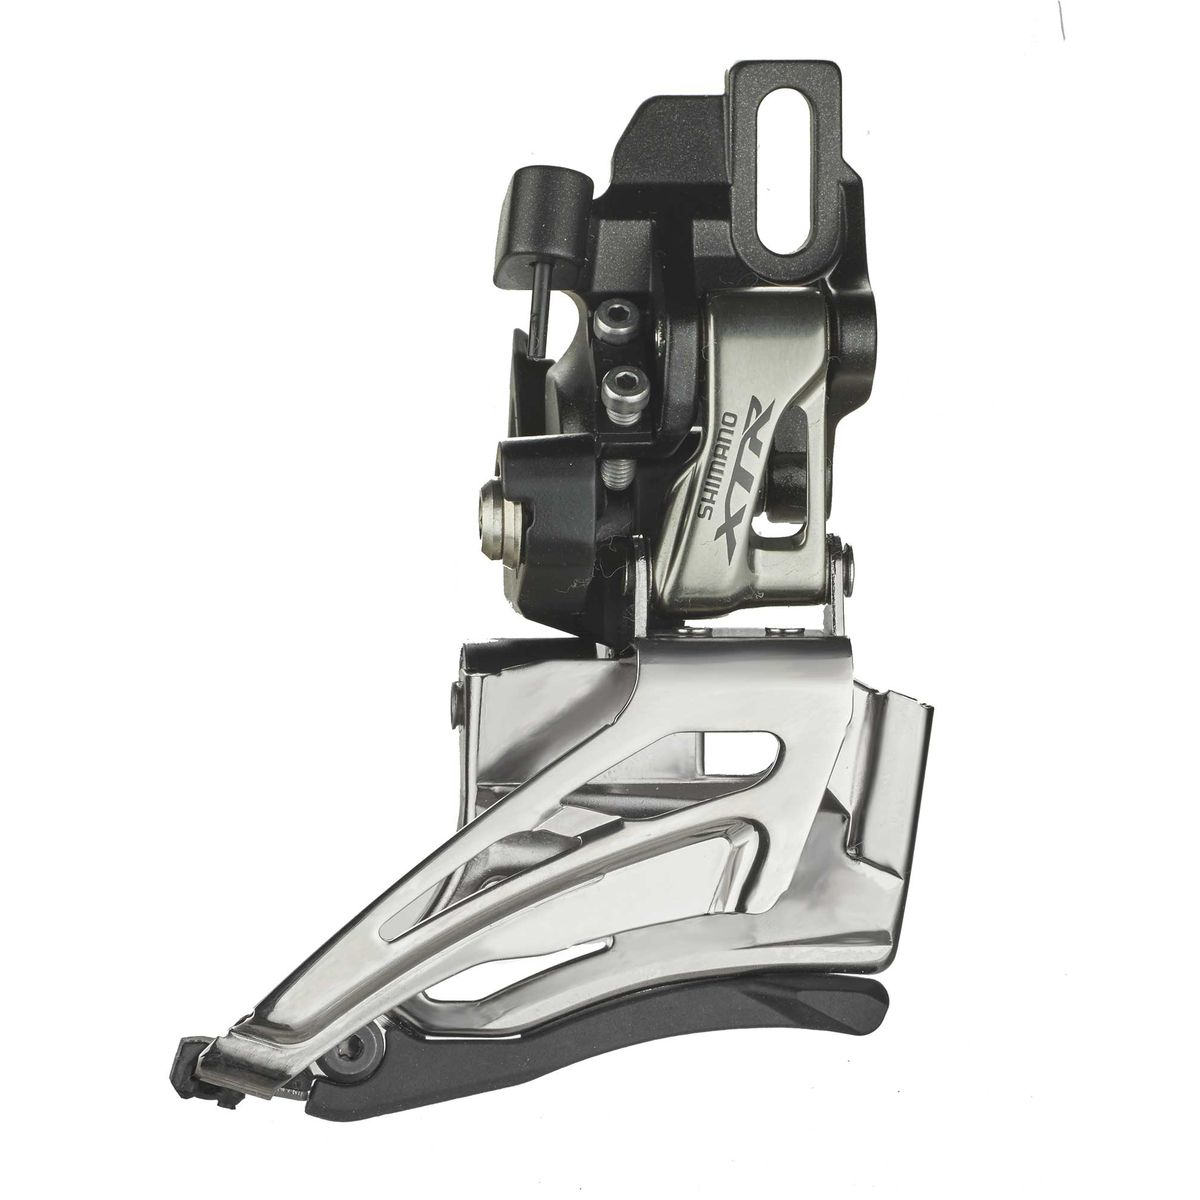 XTR FD-M9025-D - High Direct Mount - Umwerfer